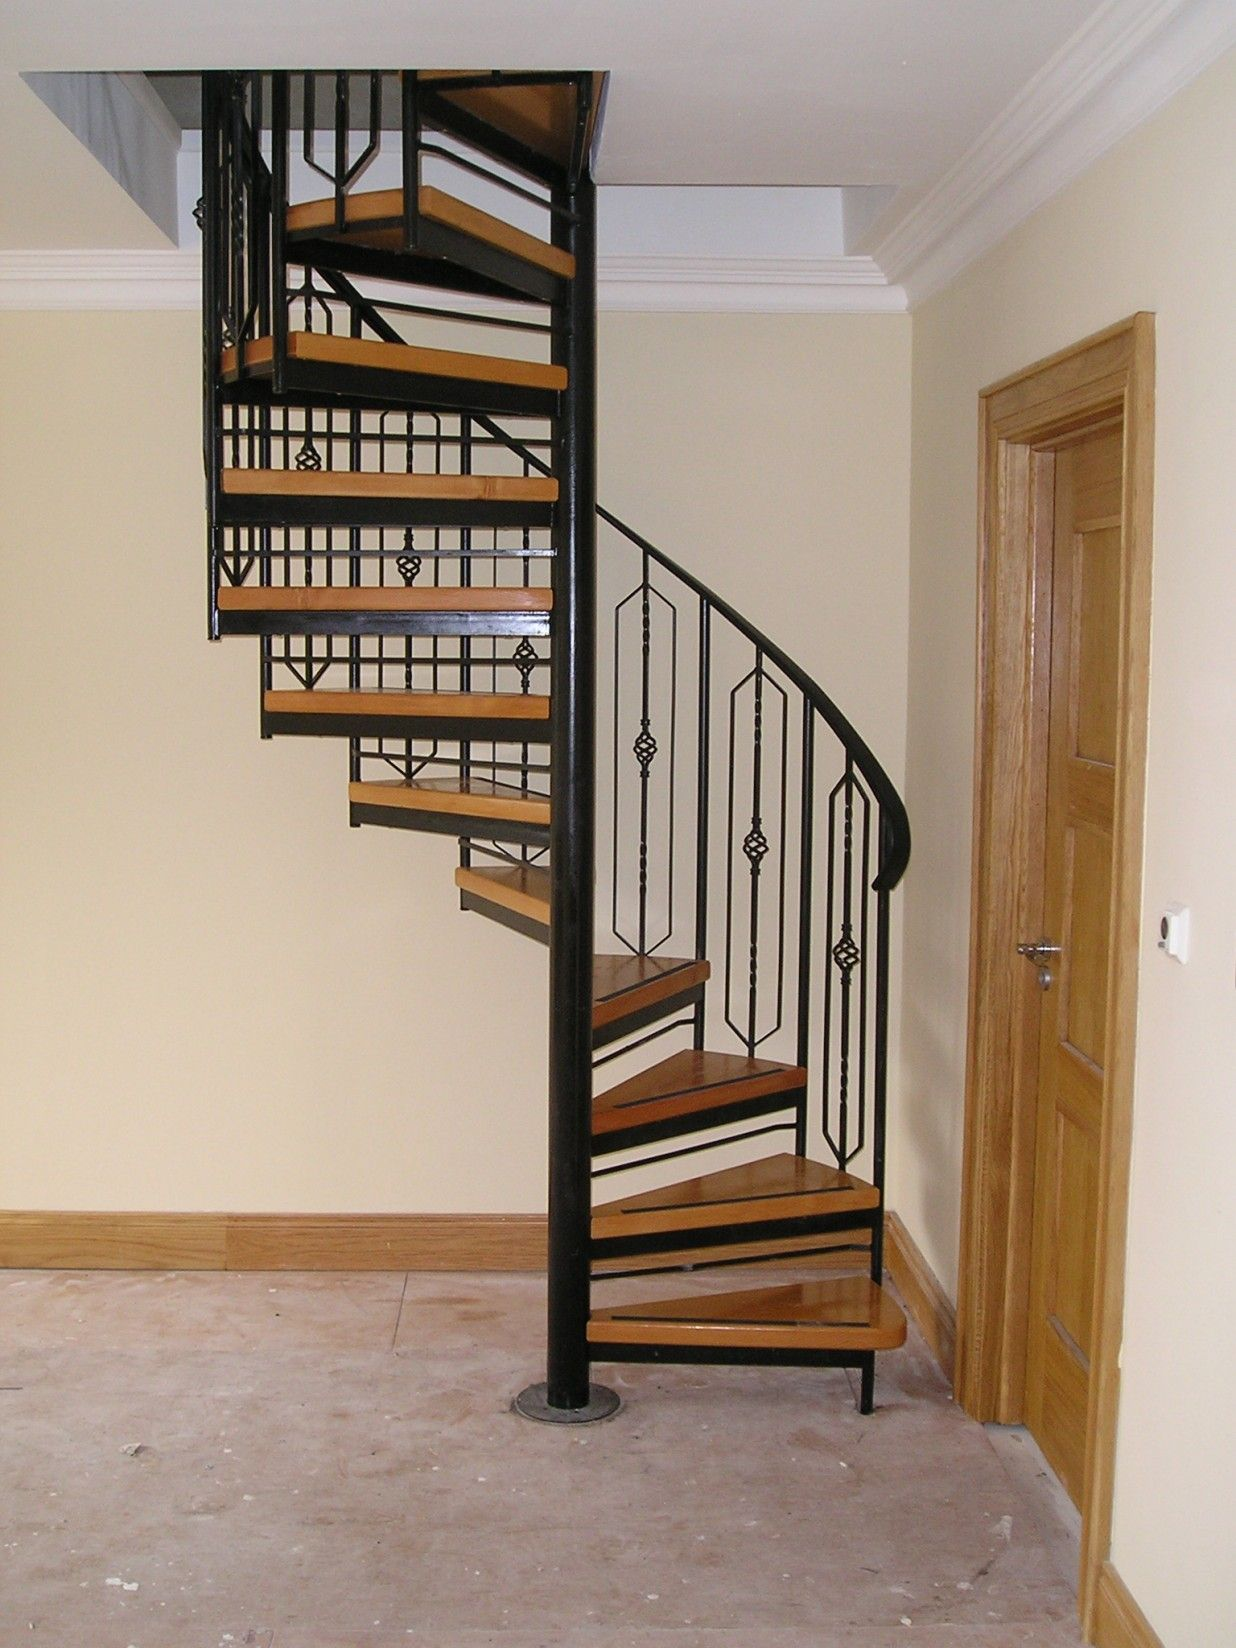 Carpenterstown Traditional Spiral Stairs Stairs Design   Circular Stairs For Sale   Rustic   Ornate   Interior   Shop   Slide